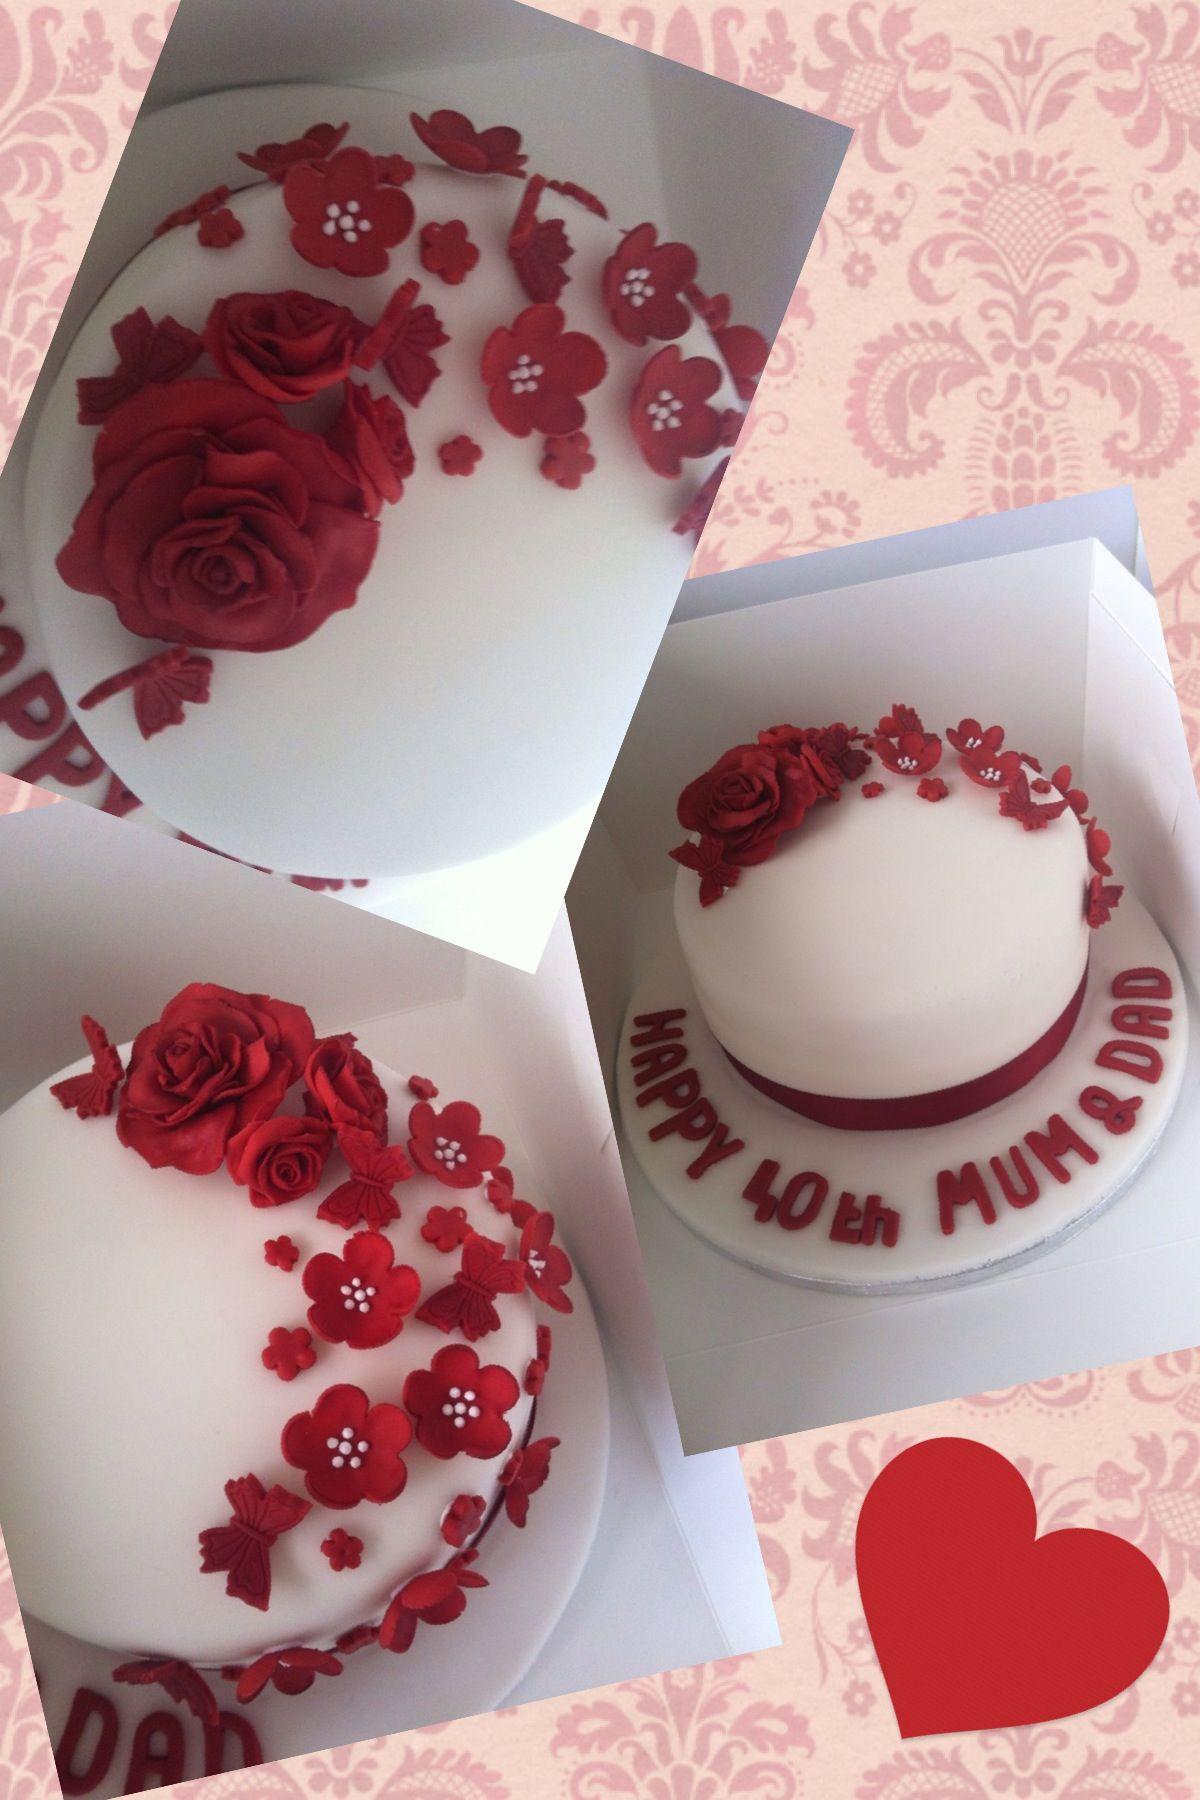 Ruby wedding anniversary cakes to make Pinterest ...